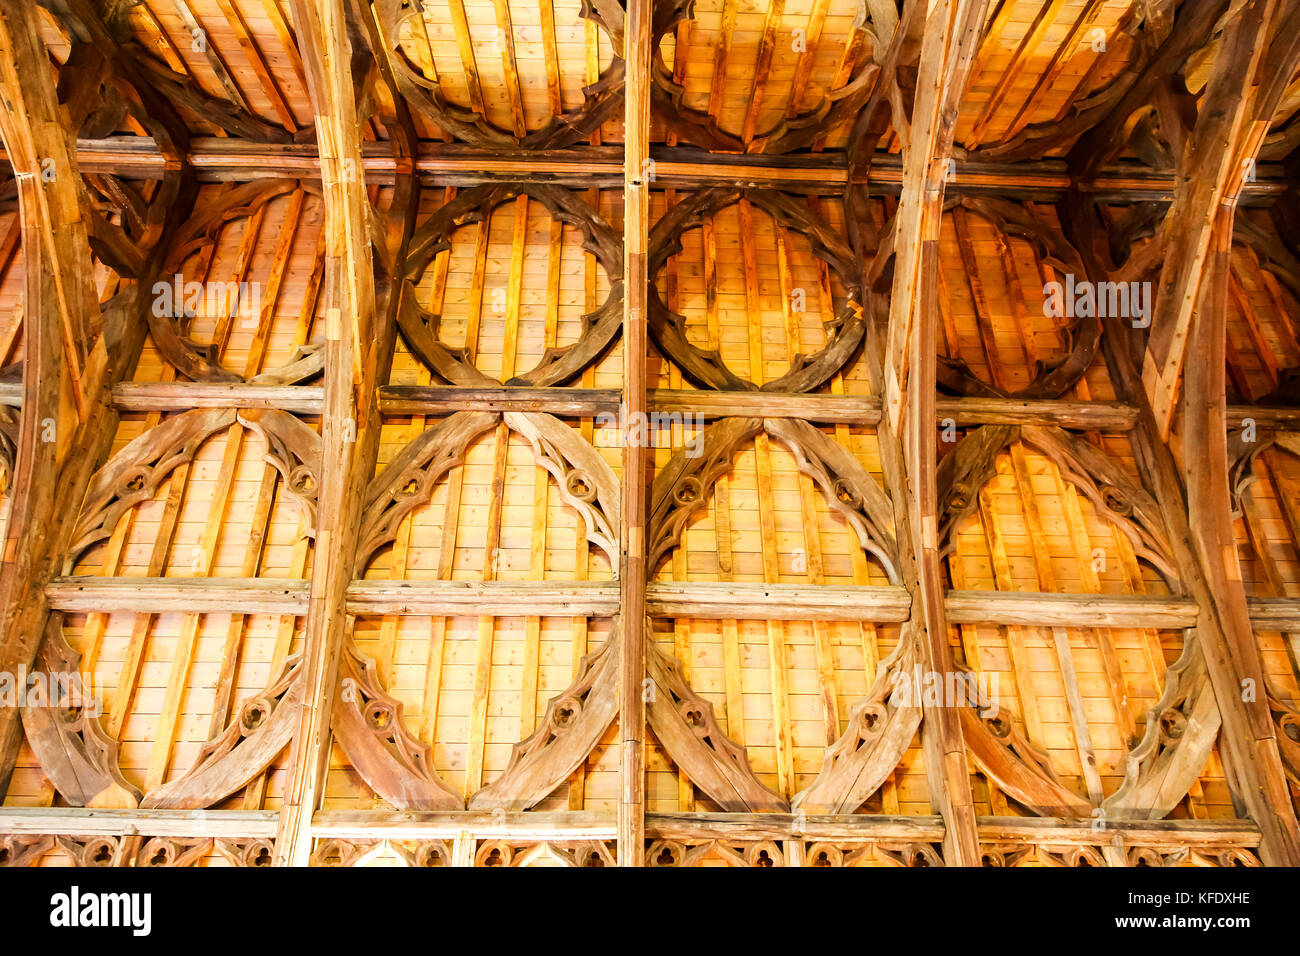 The intricate roof timbers of the former Guesten Hall relocated at Avoncroft Museum of Buildings, Stoke Heath, Bromsgrove, - Stock Image